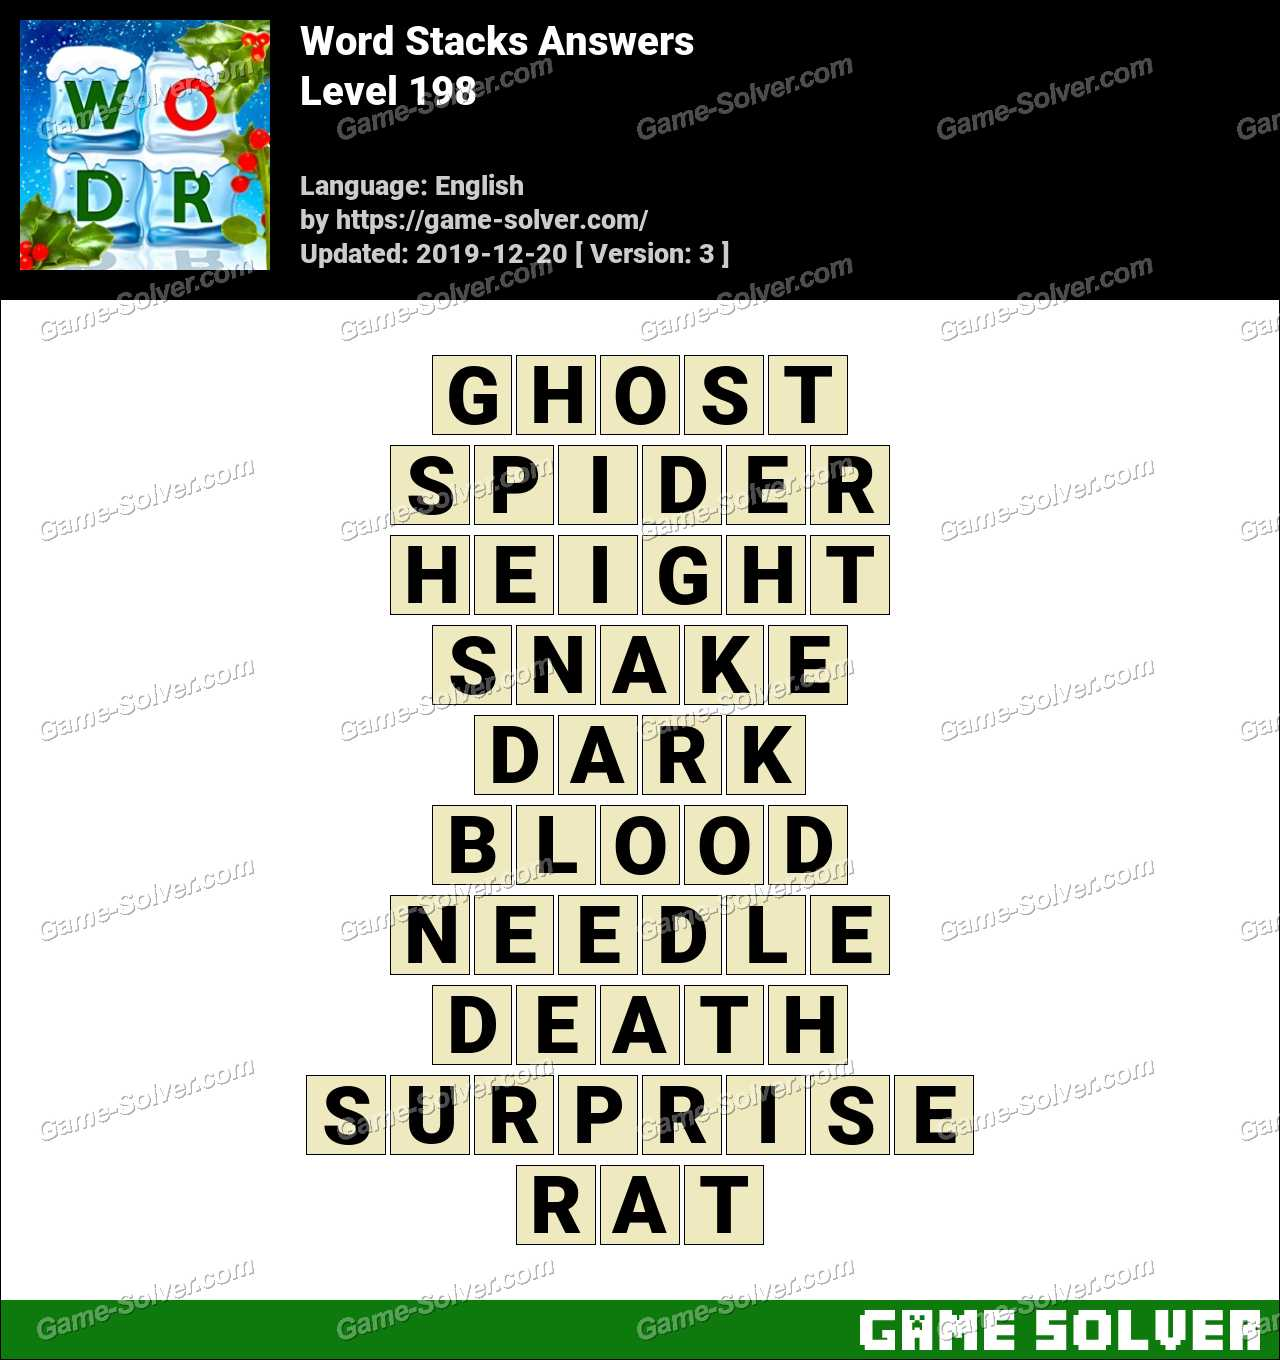 Word Stacks Level 198 Answers